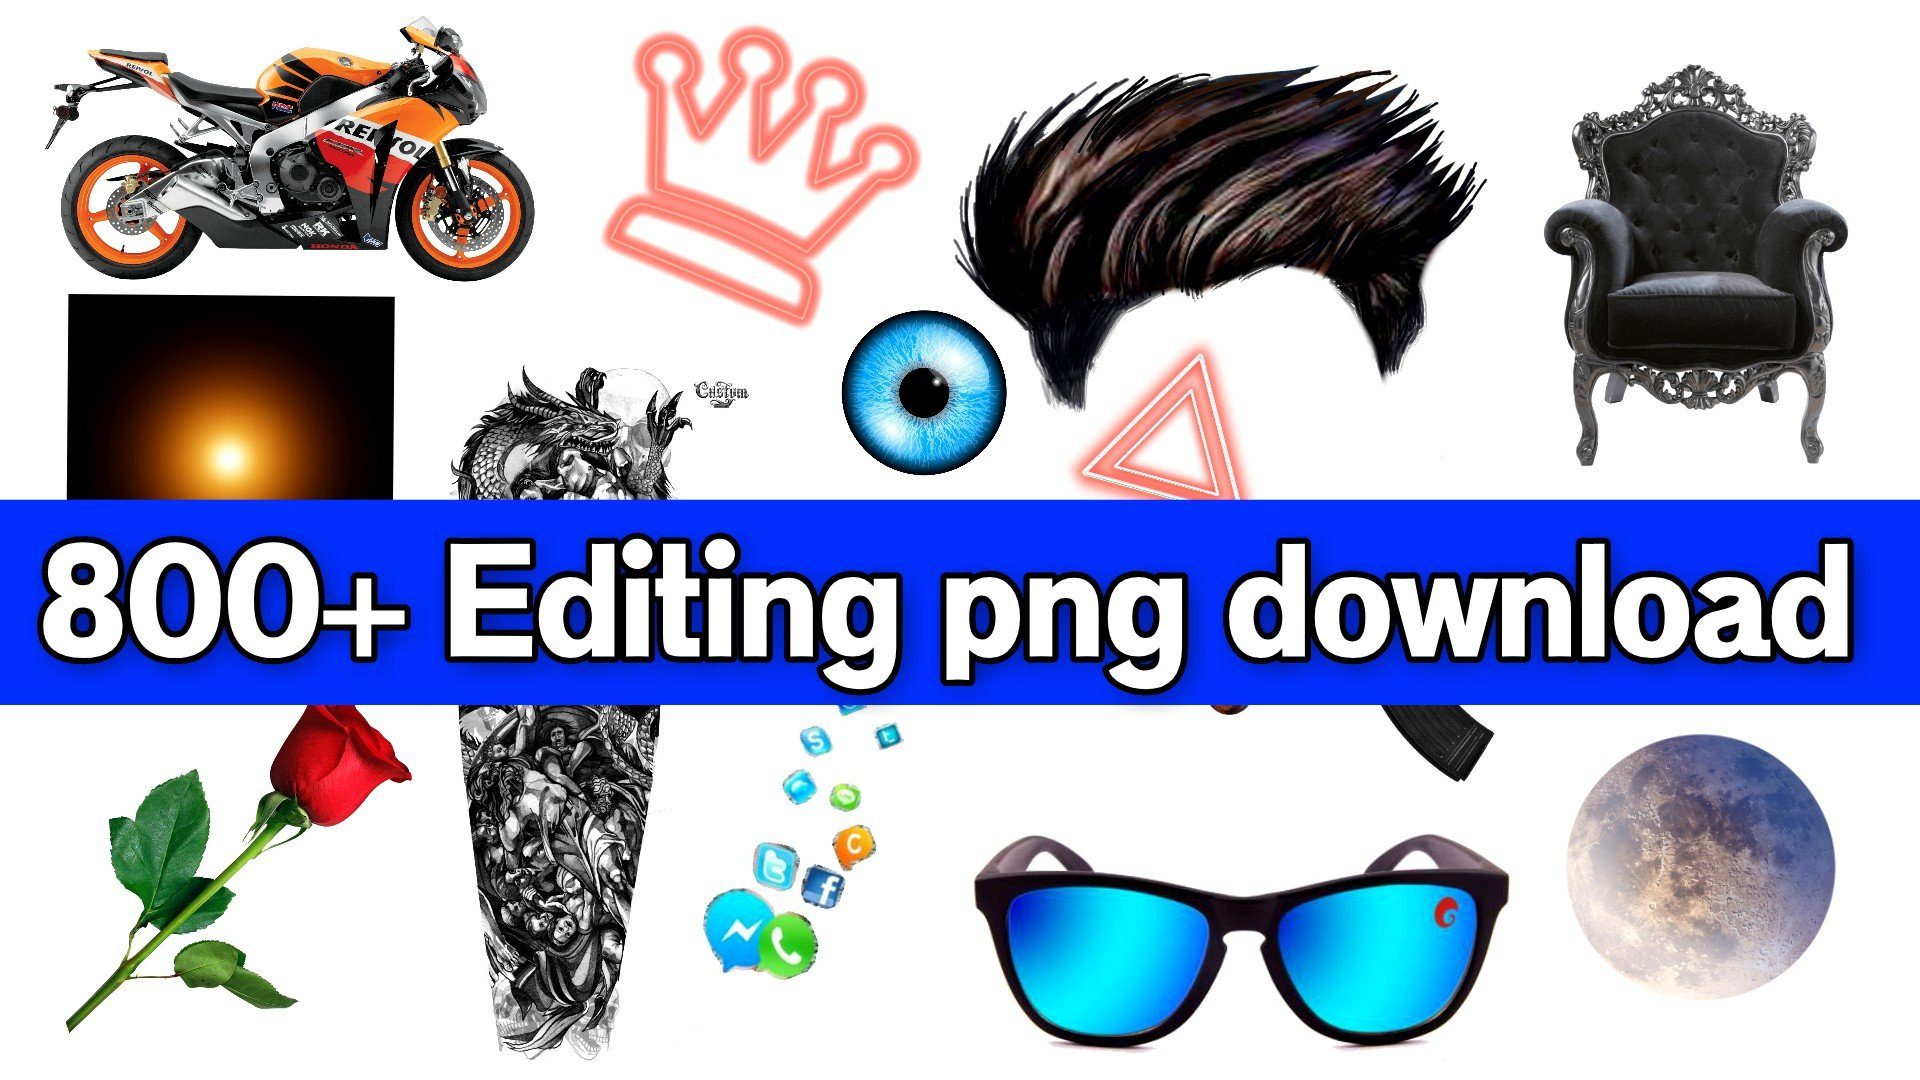 800+ PNG Editing Stock download in Zip File Latest HD Collection free do.